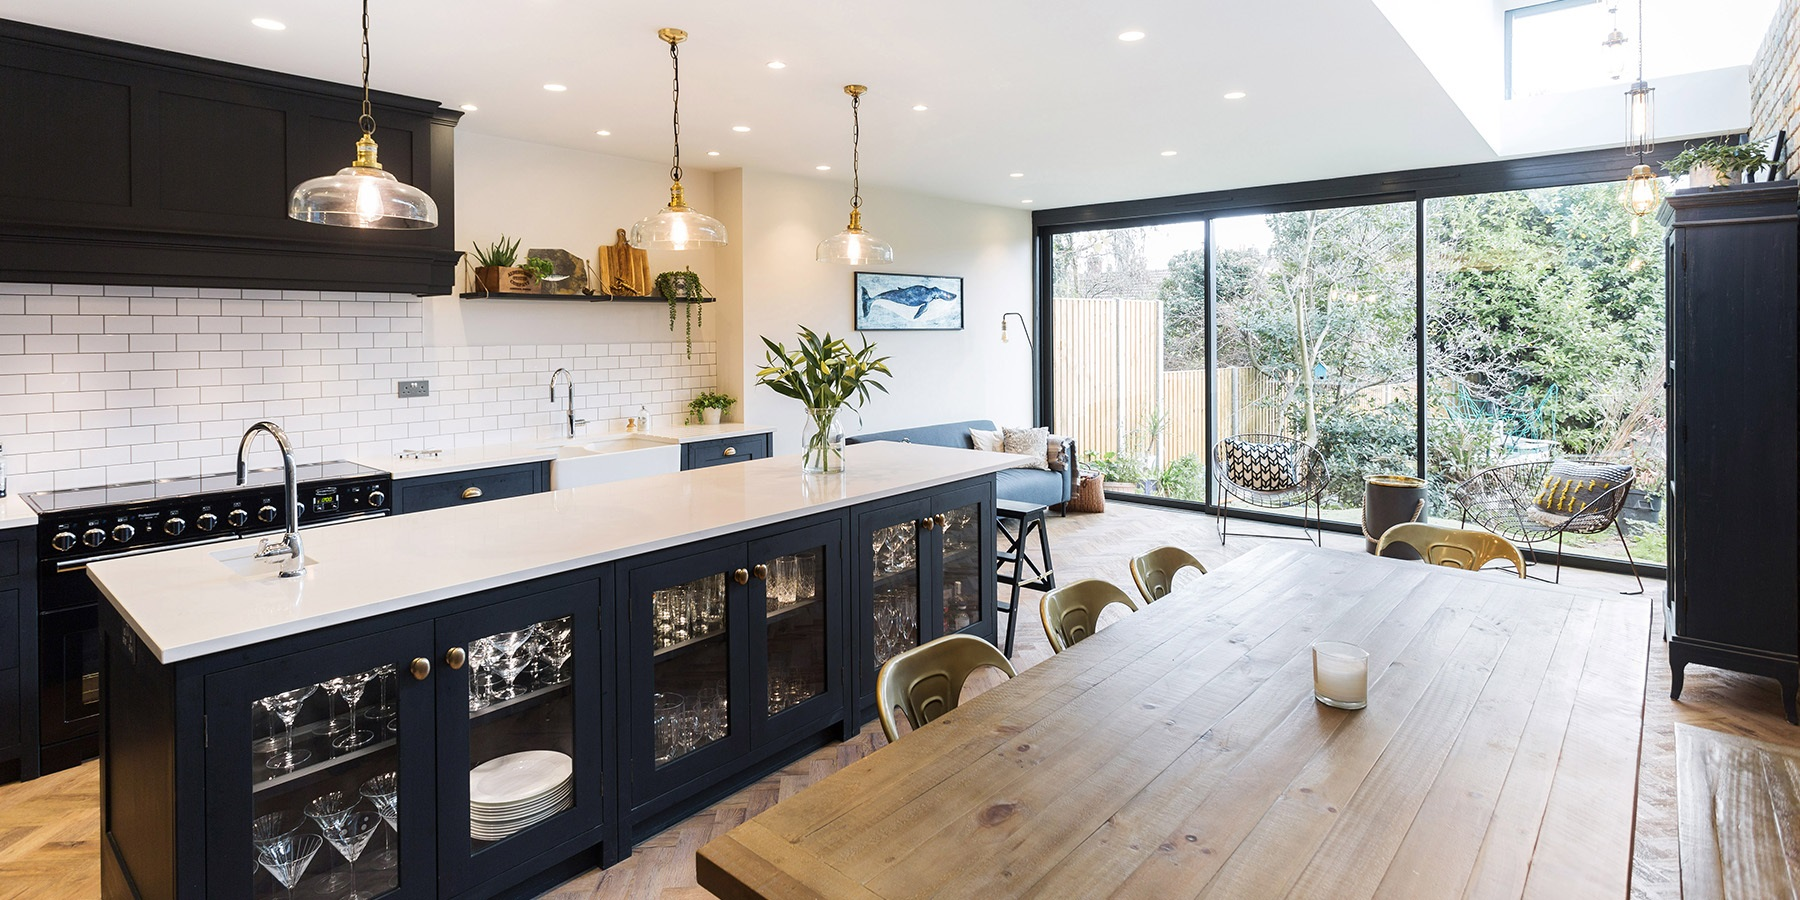 Industrial Handmade Shaker Kitchen - Burlanes Testimonial - What the homeowners of this beautiful London townhouse have to say about our service and design.